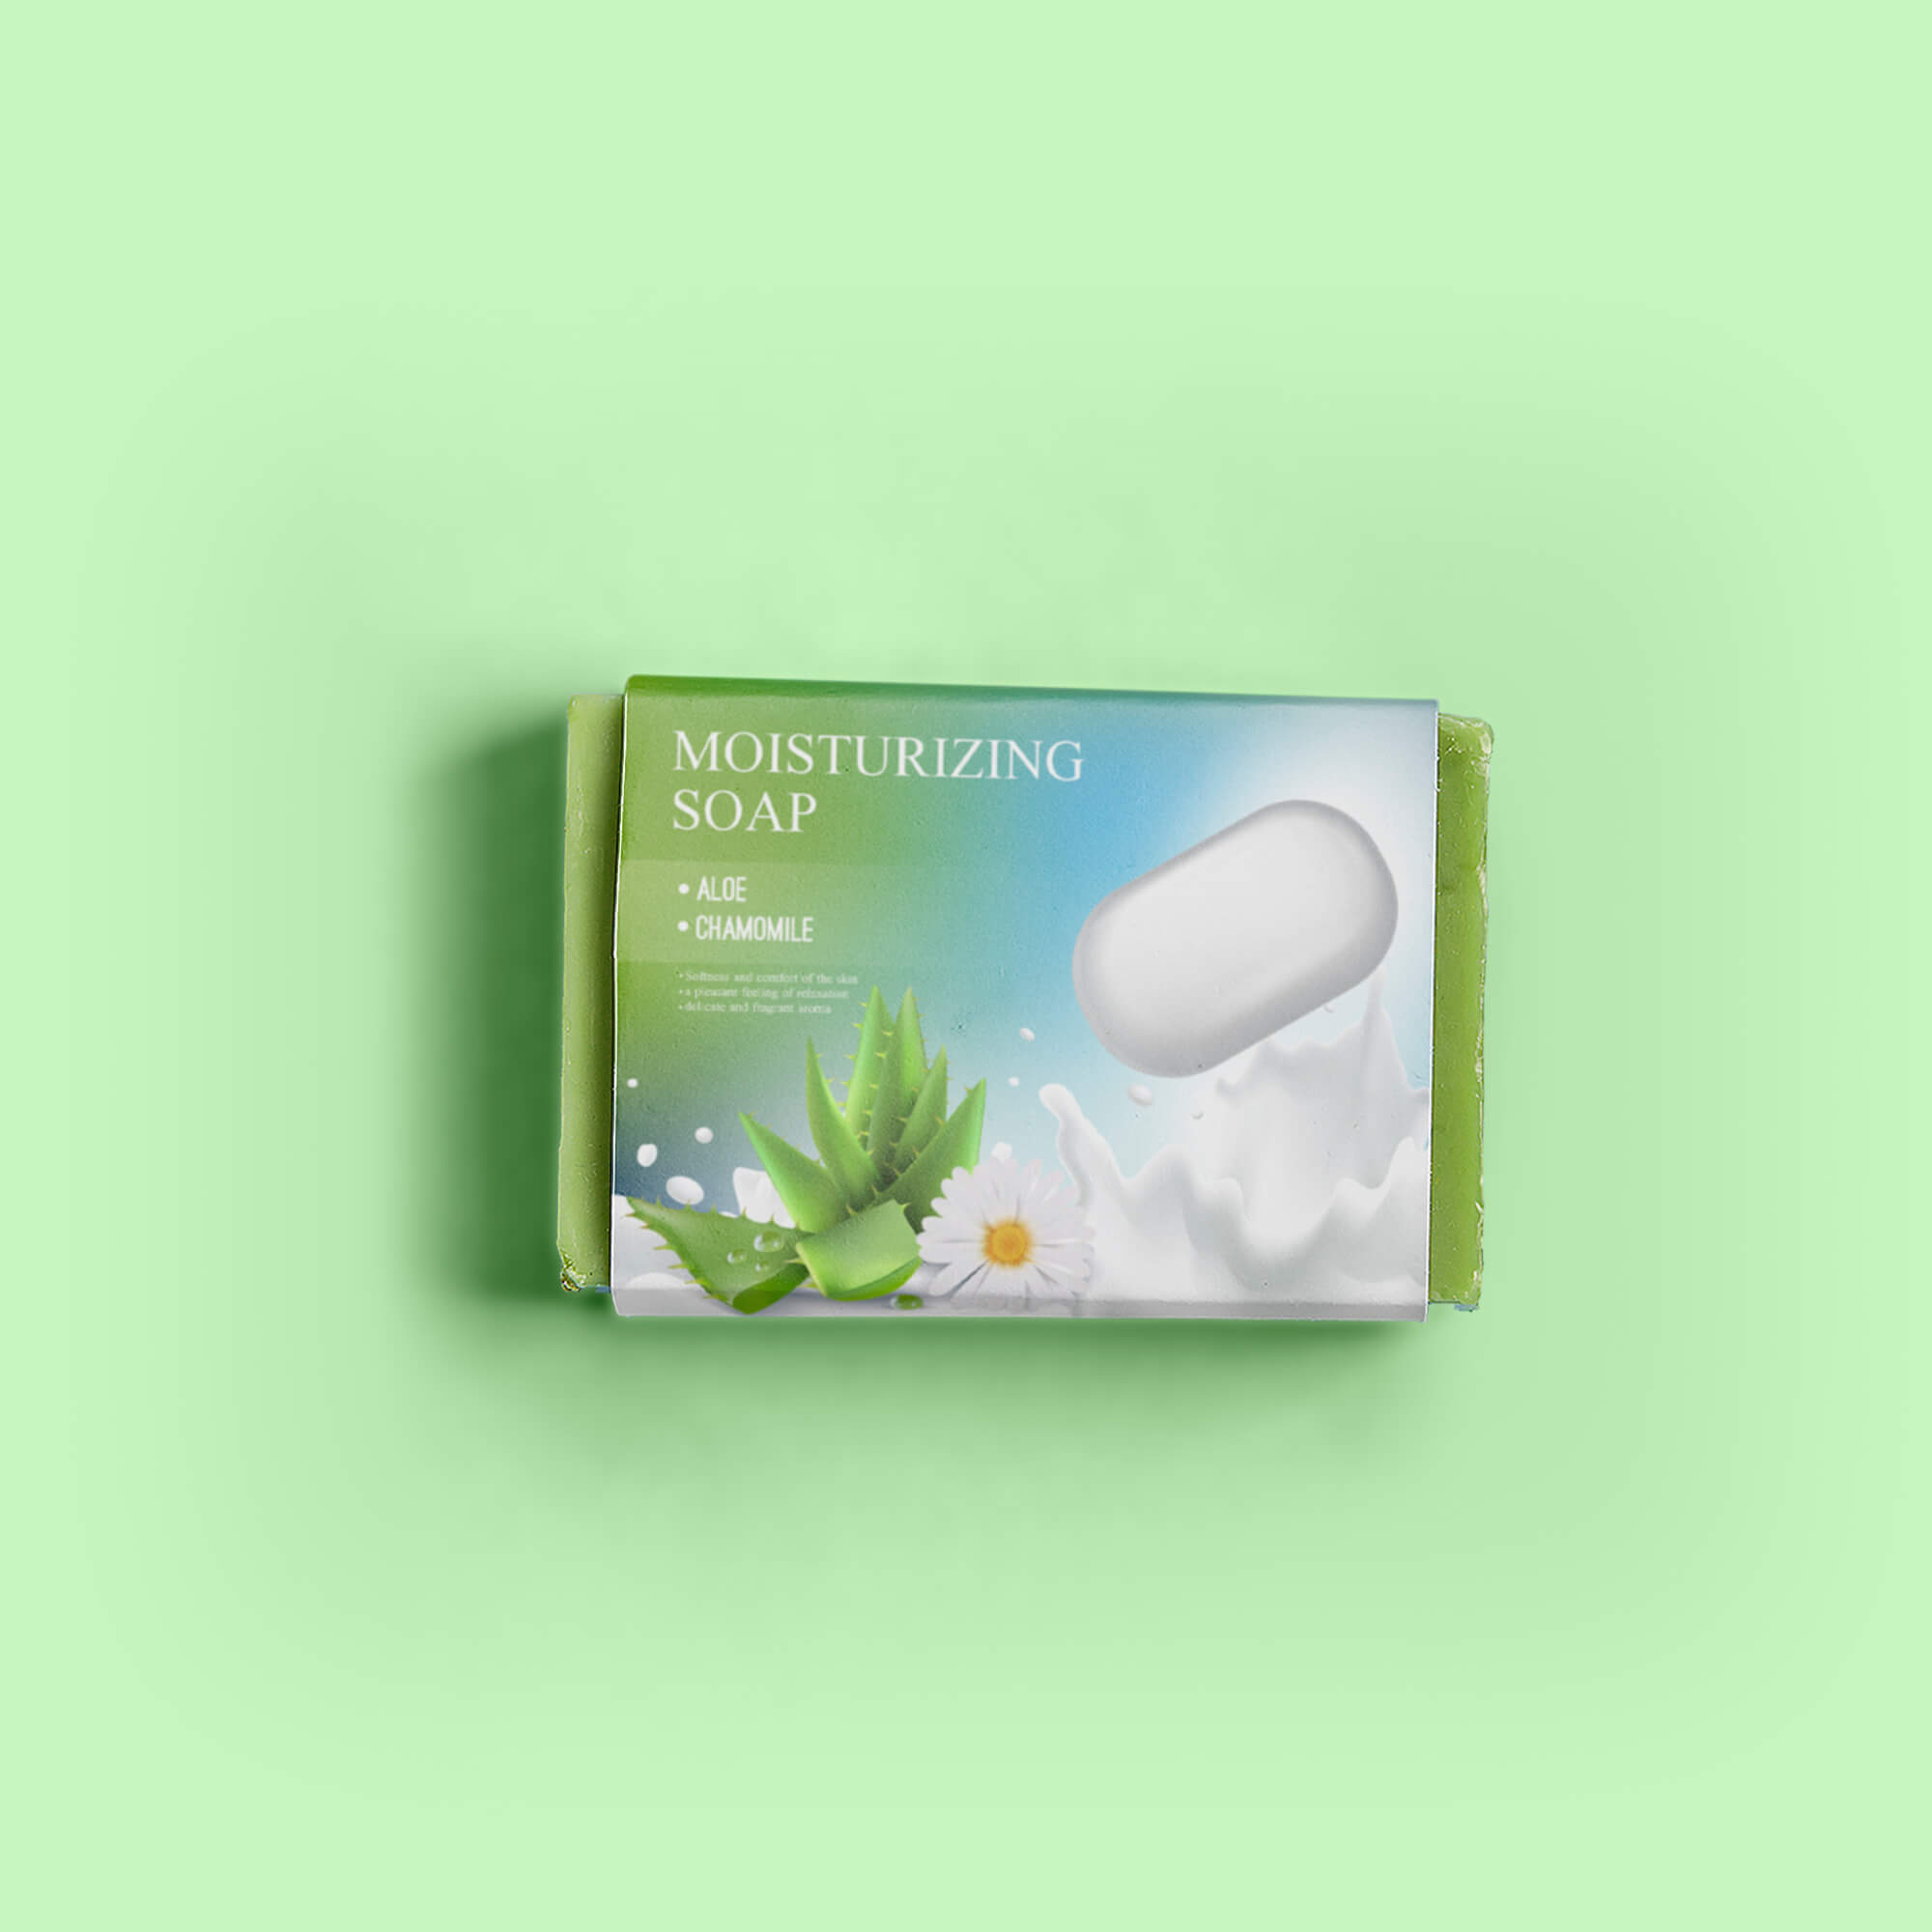 Design Free Soap Packaging Mockup PSD Template